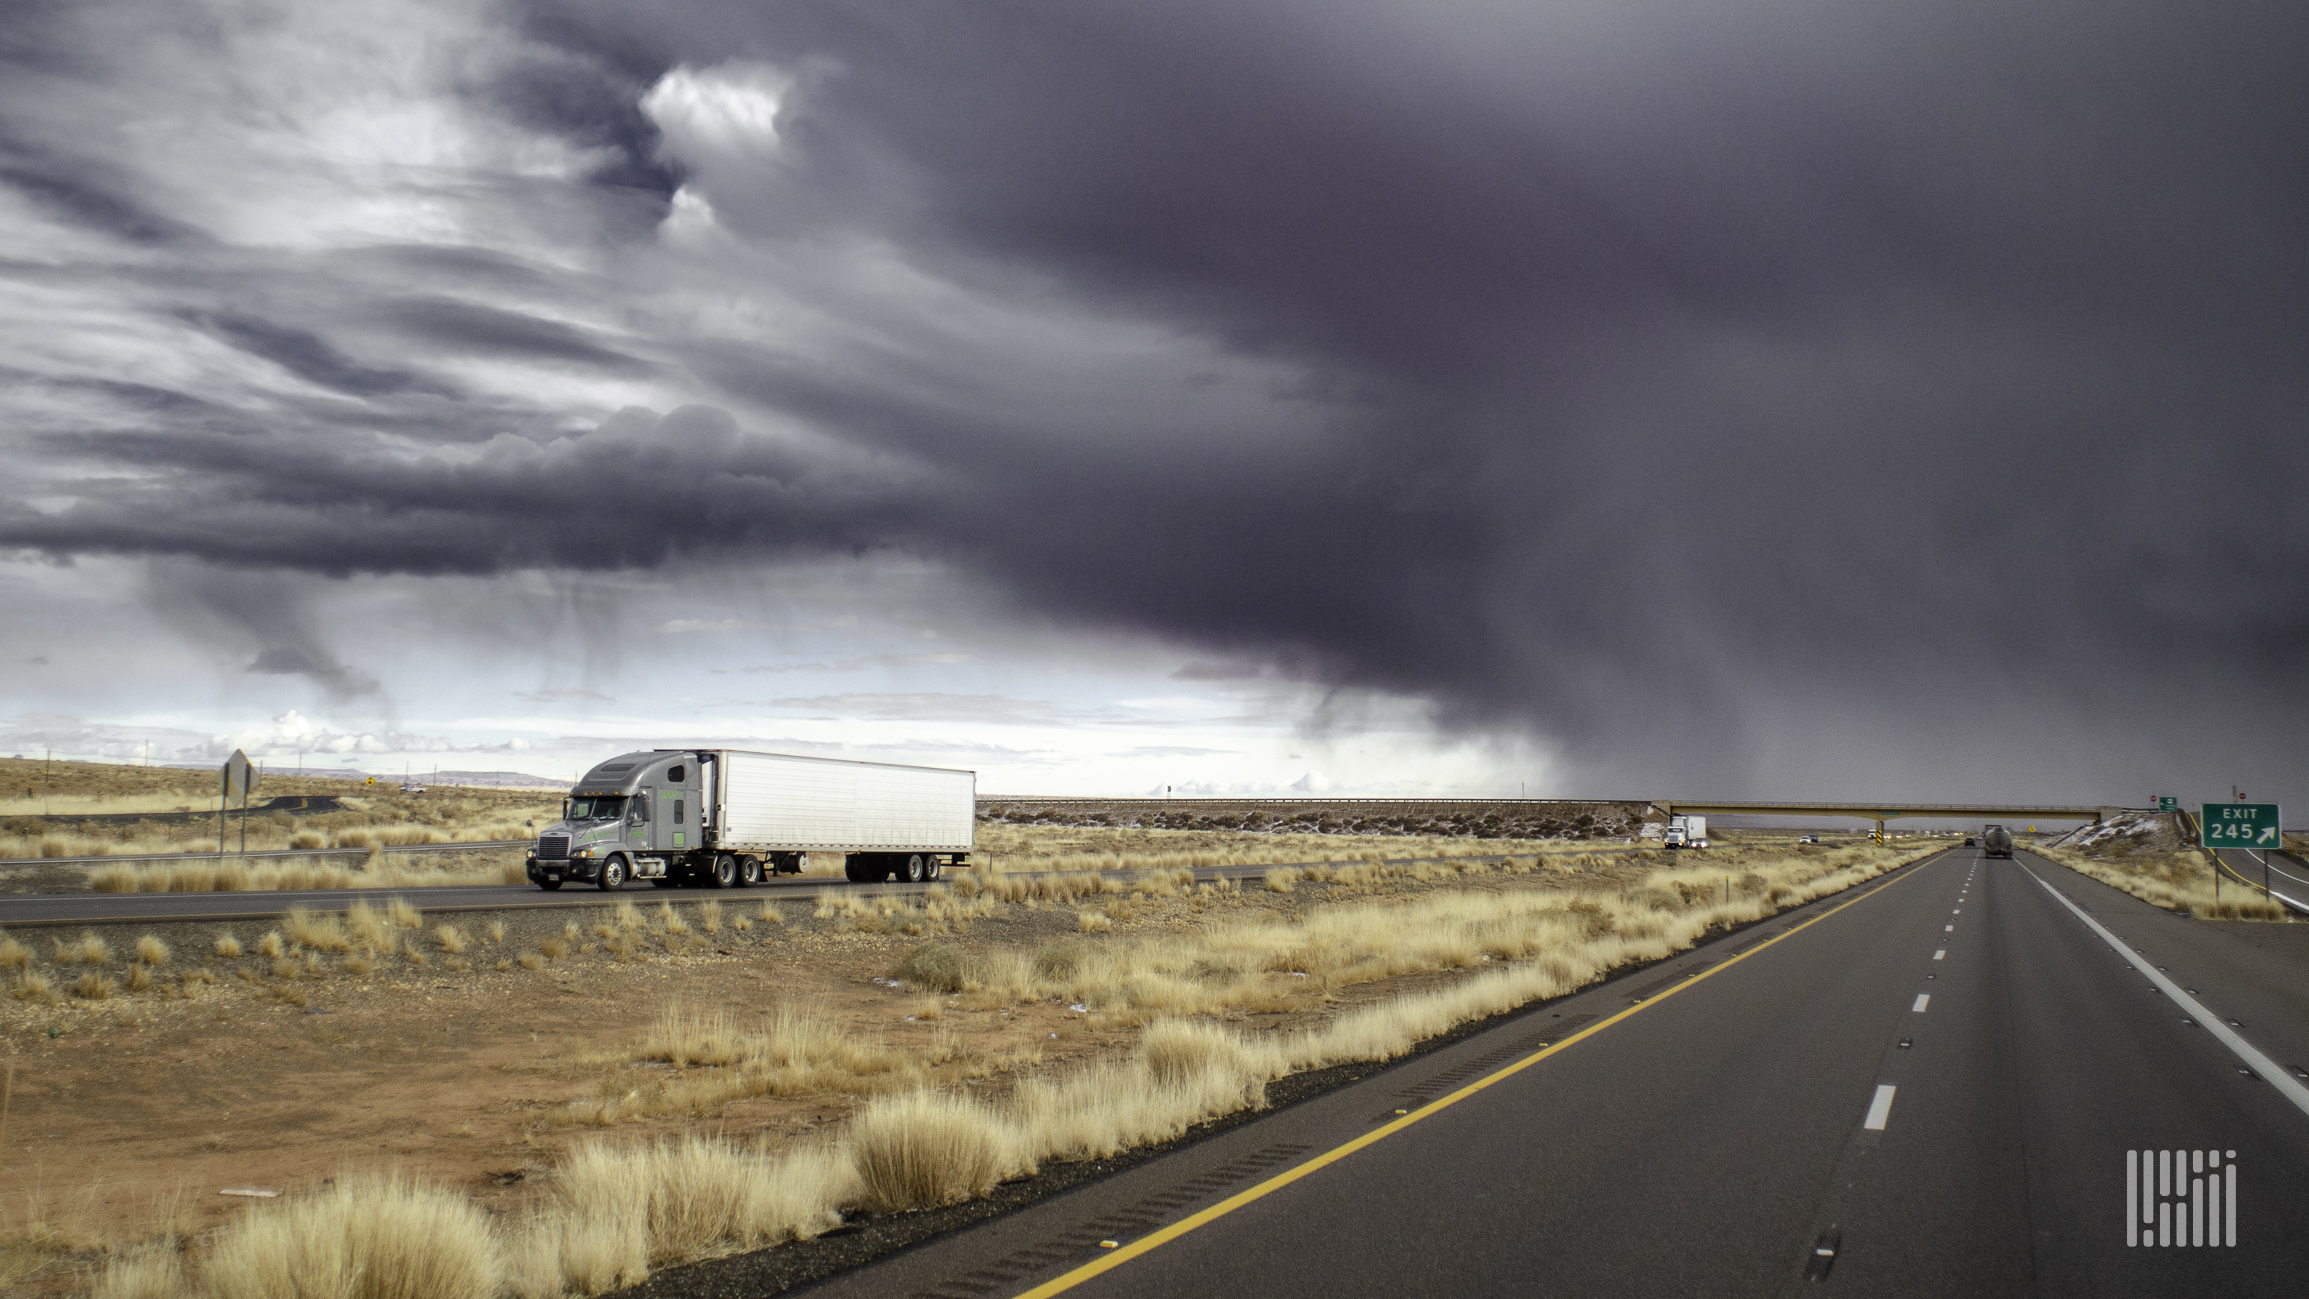 Tractor-trailer heading down a desert highway with storm cloud behind it.